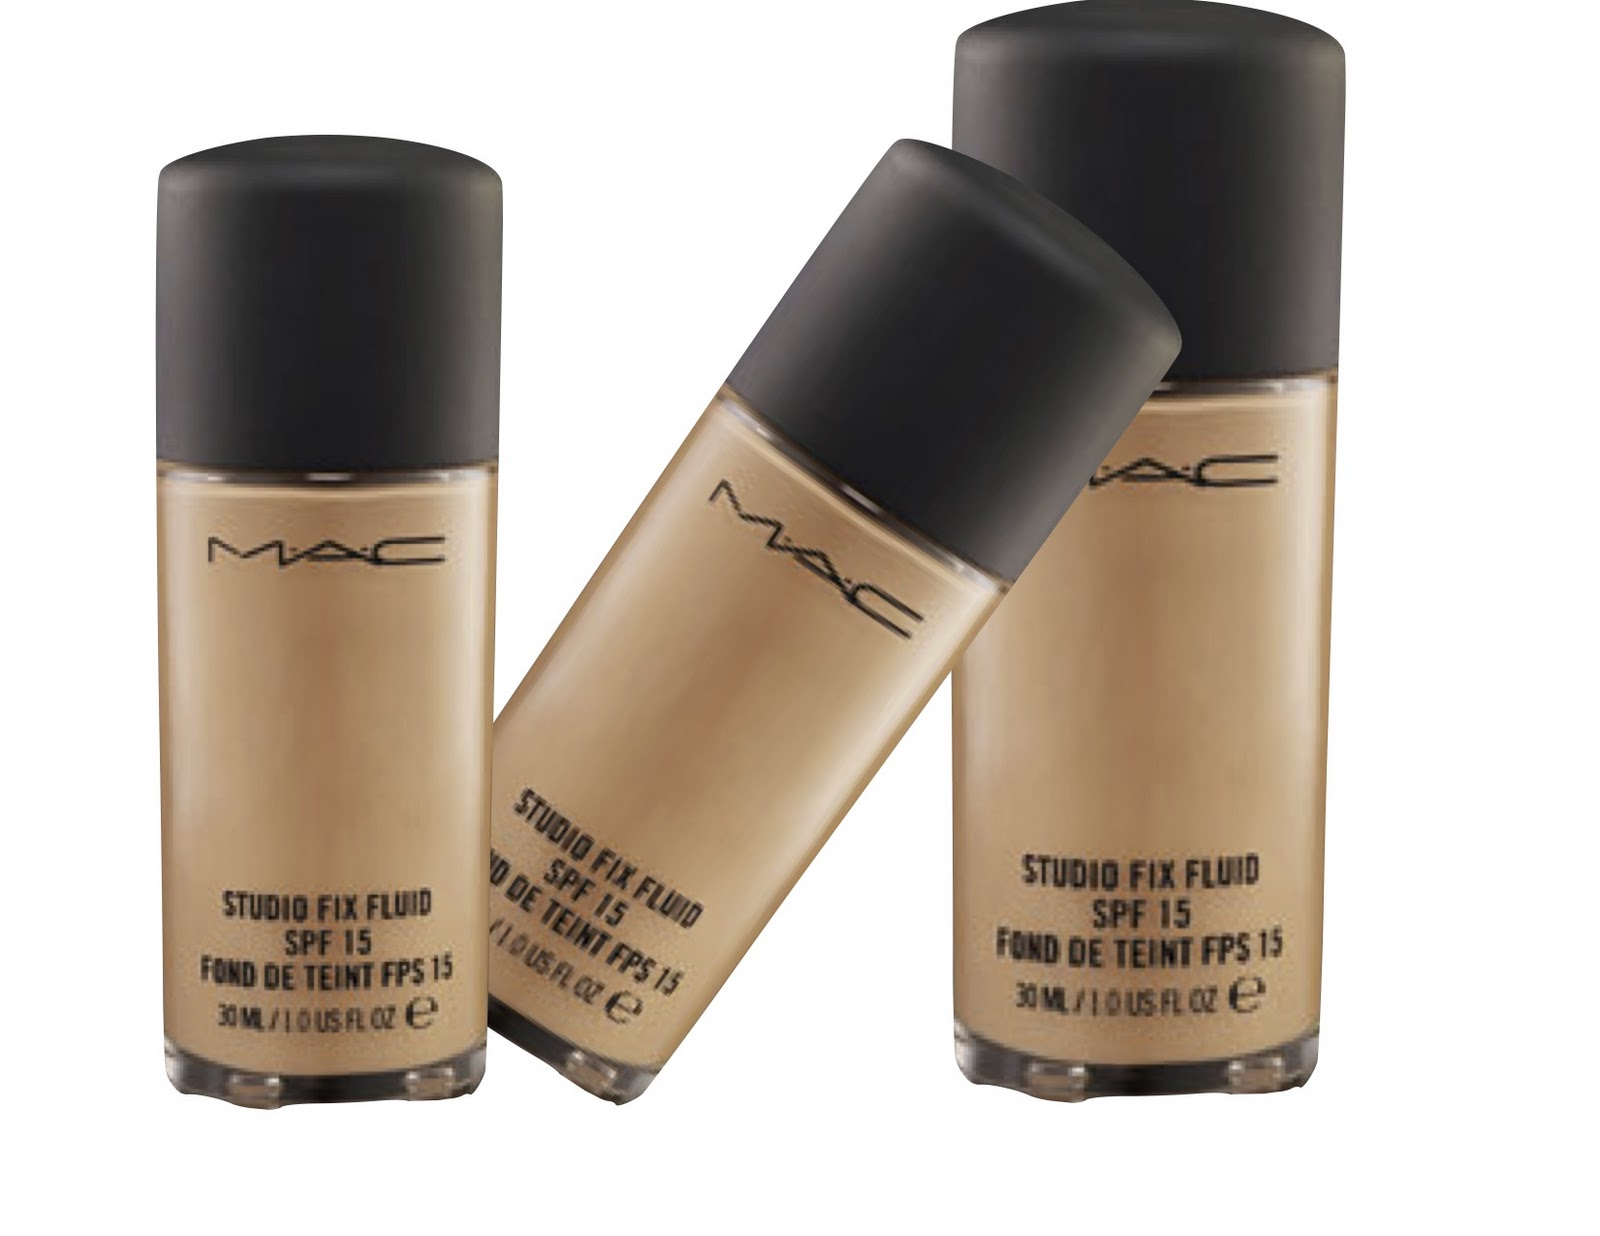 MAC Studio Fix Fluid SPF15 review swatches photos price india